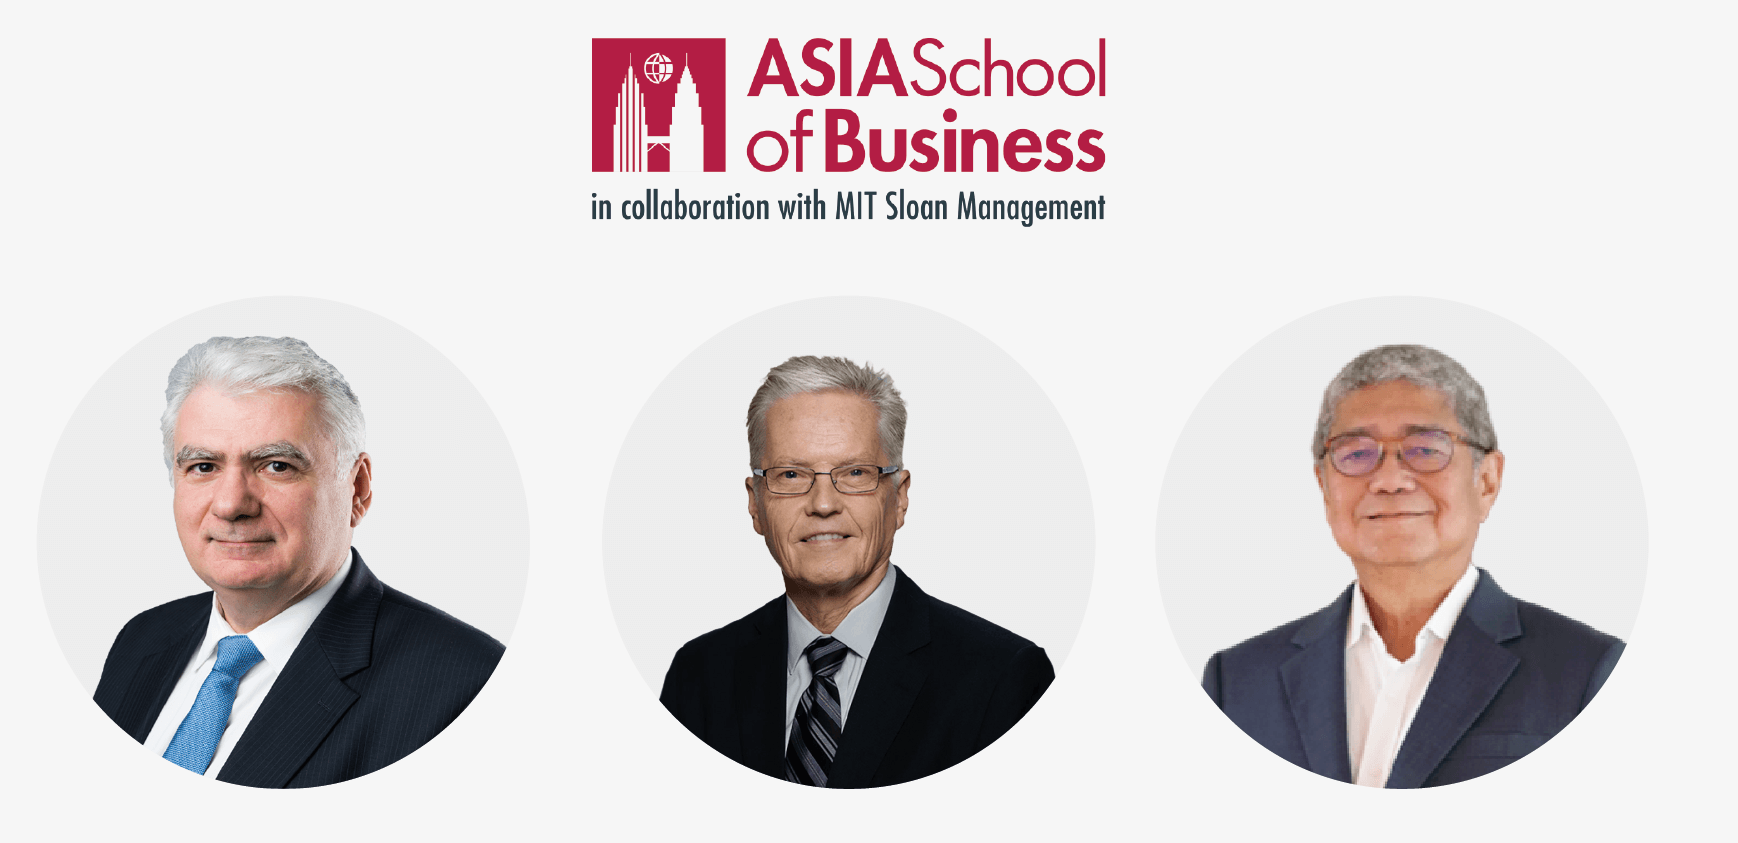 The Asia School of Business ranked as Malaysia's Top Economic Research Institution